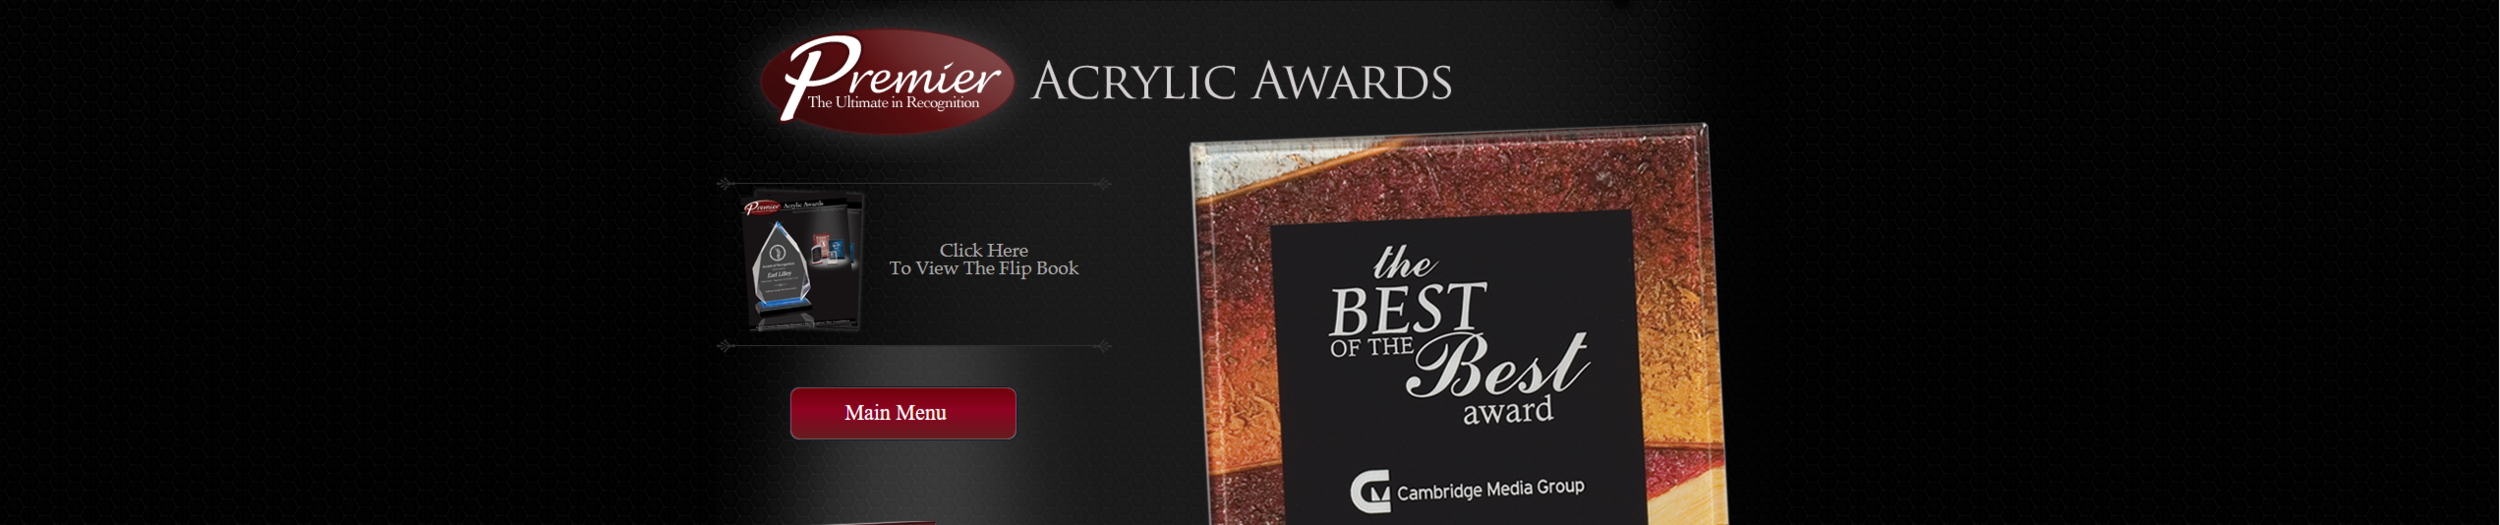 Premier Acrylic Awards.PNG